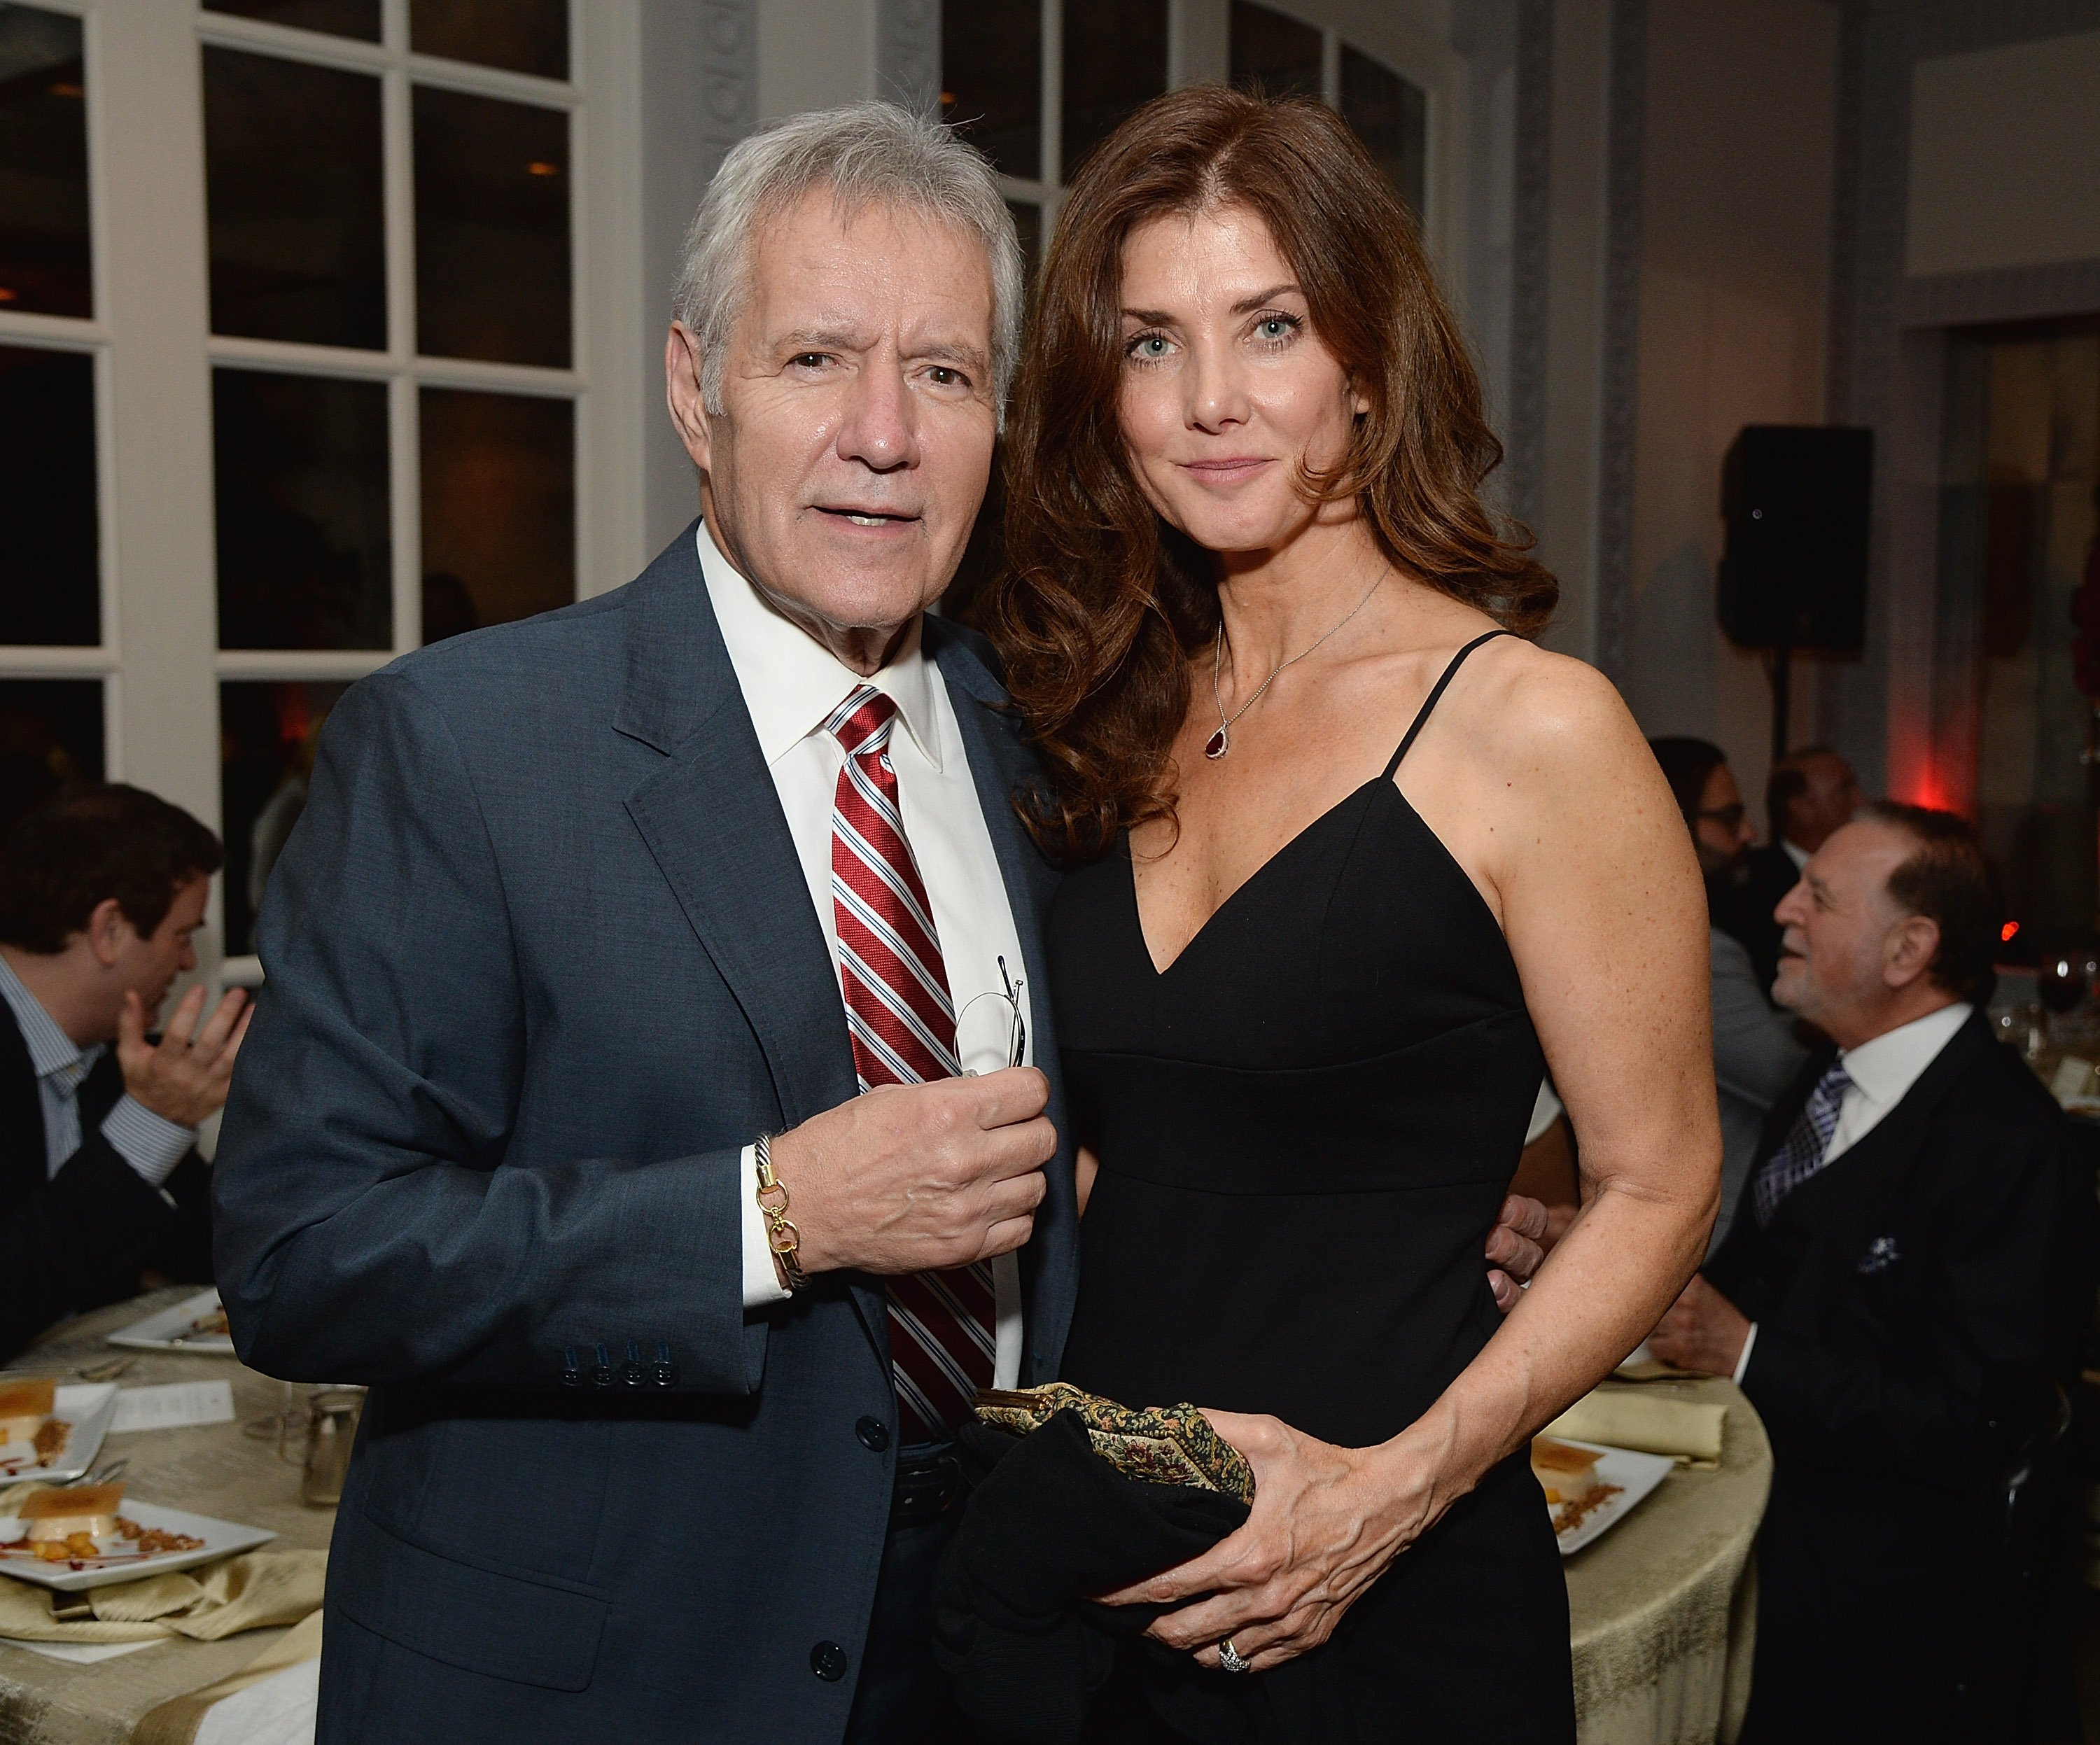 Trebek and his wife of 29 years, Jane Currivan. Image credit: Getty/Global Images Ukraine